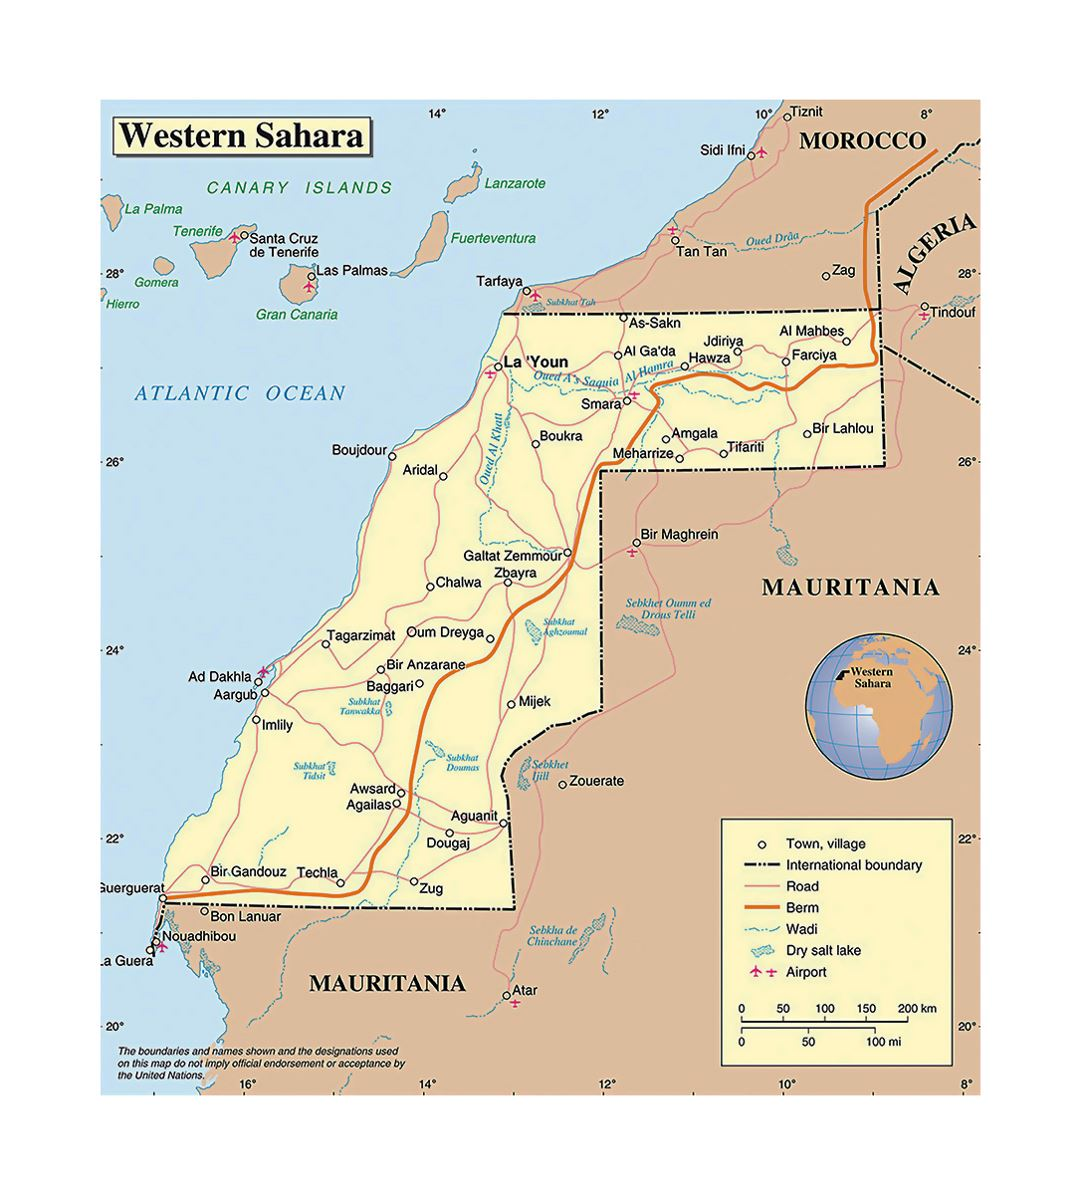 Detailed political map of Western Sahara